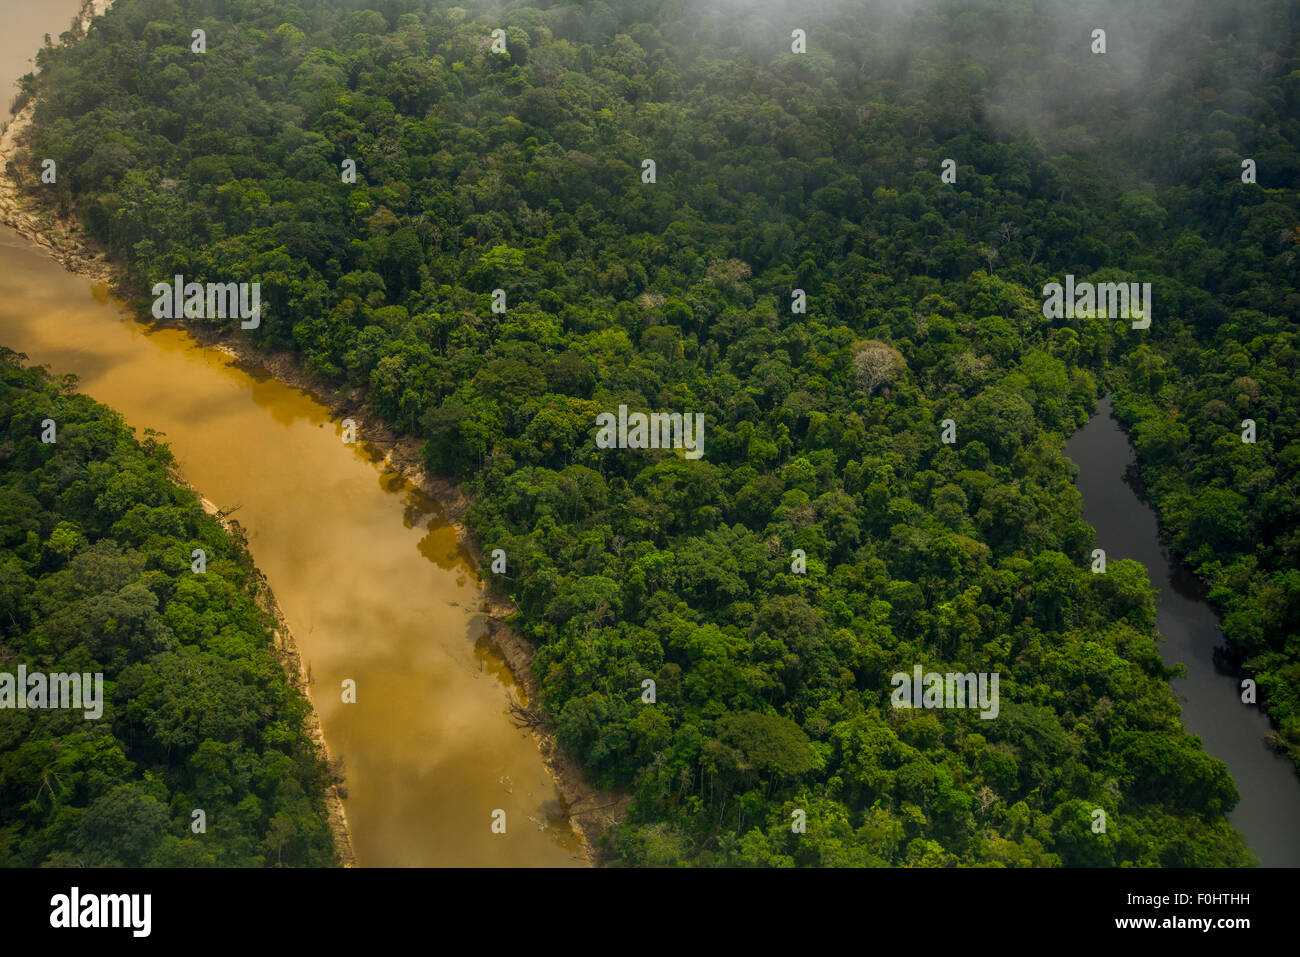 Amazon Rainforest aerial. Primary forest, Yavari Miri River and oxbow lake, between Iquitos, Peru and Brazilian - Stock Image